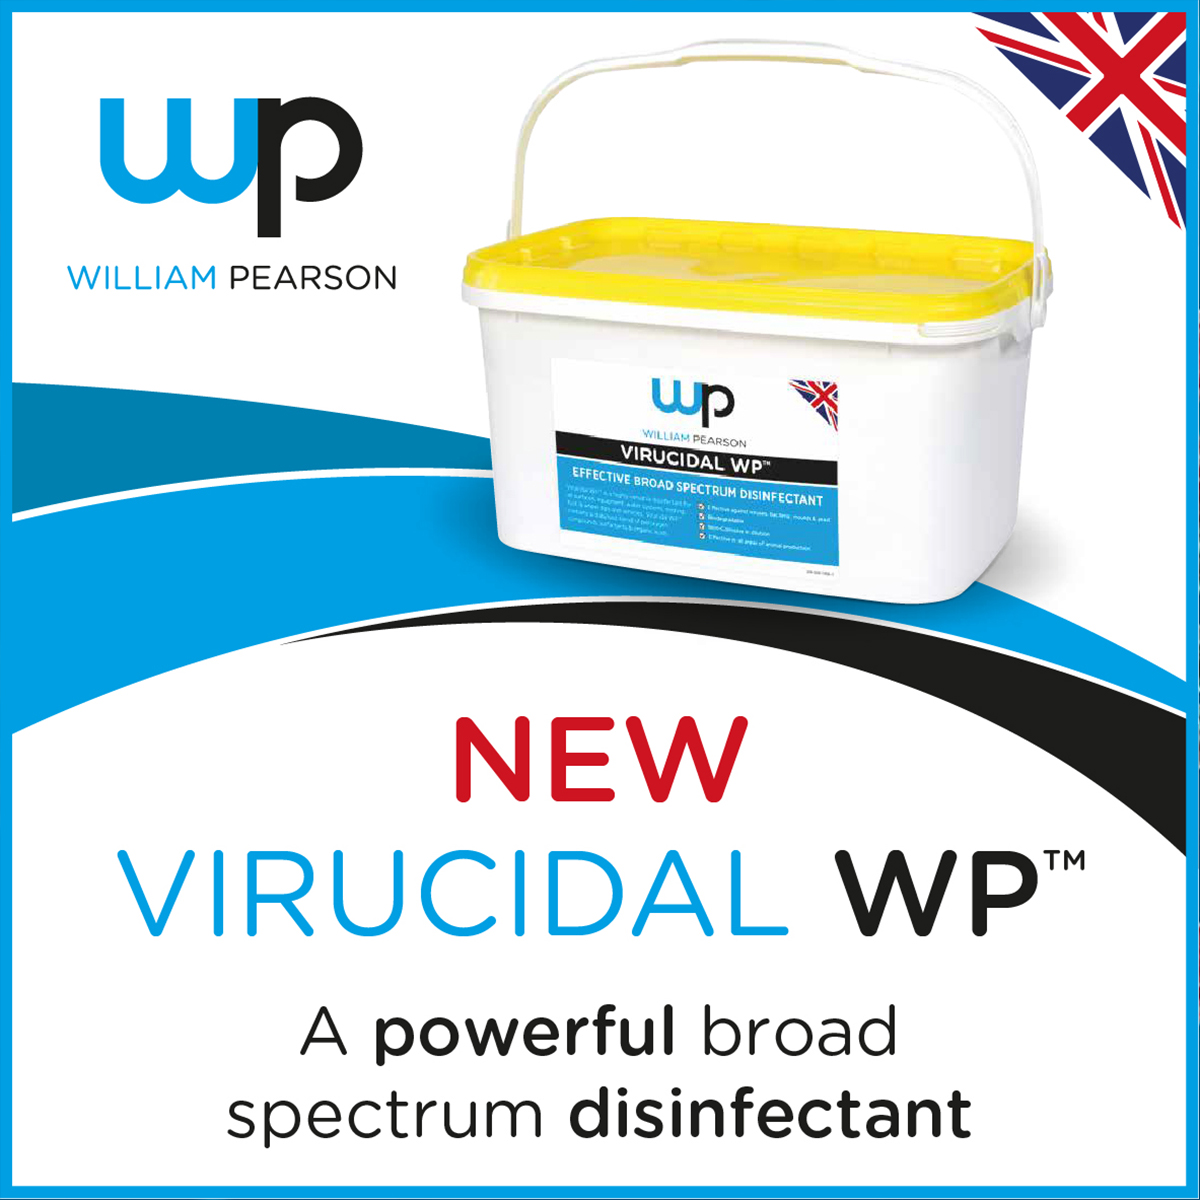 Introducing NEW Virucidal WP™ High quality, high performance disinfectant